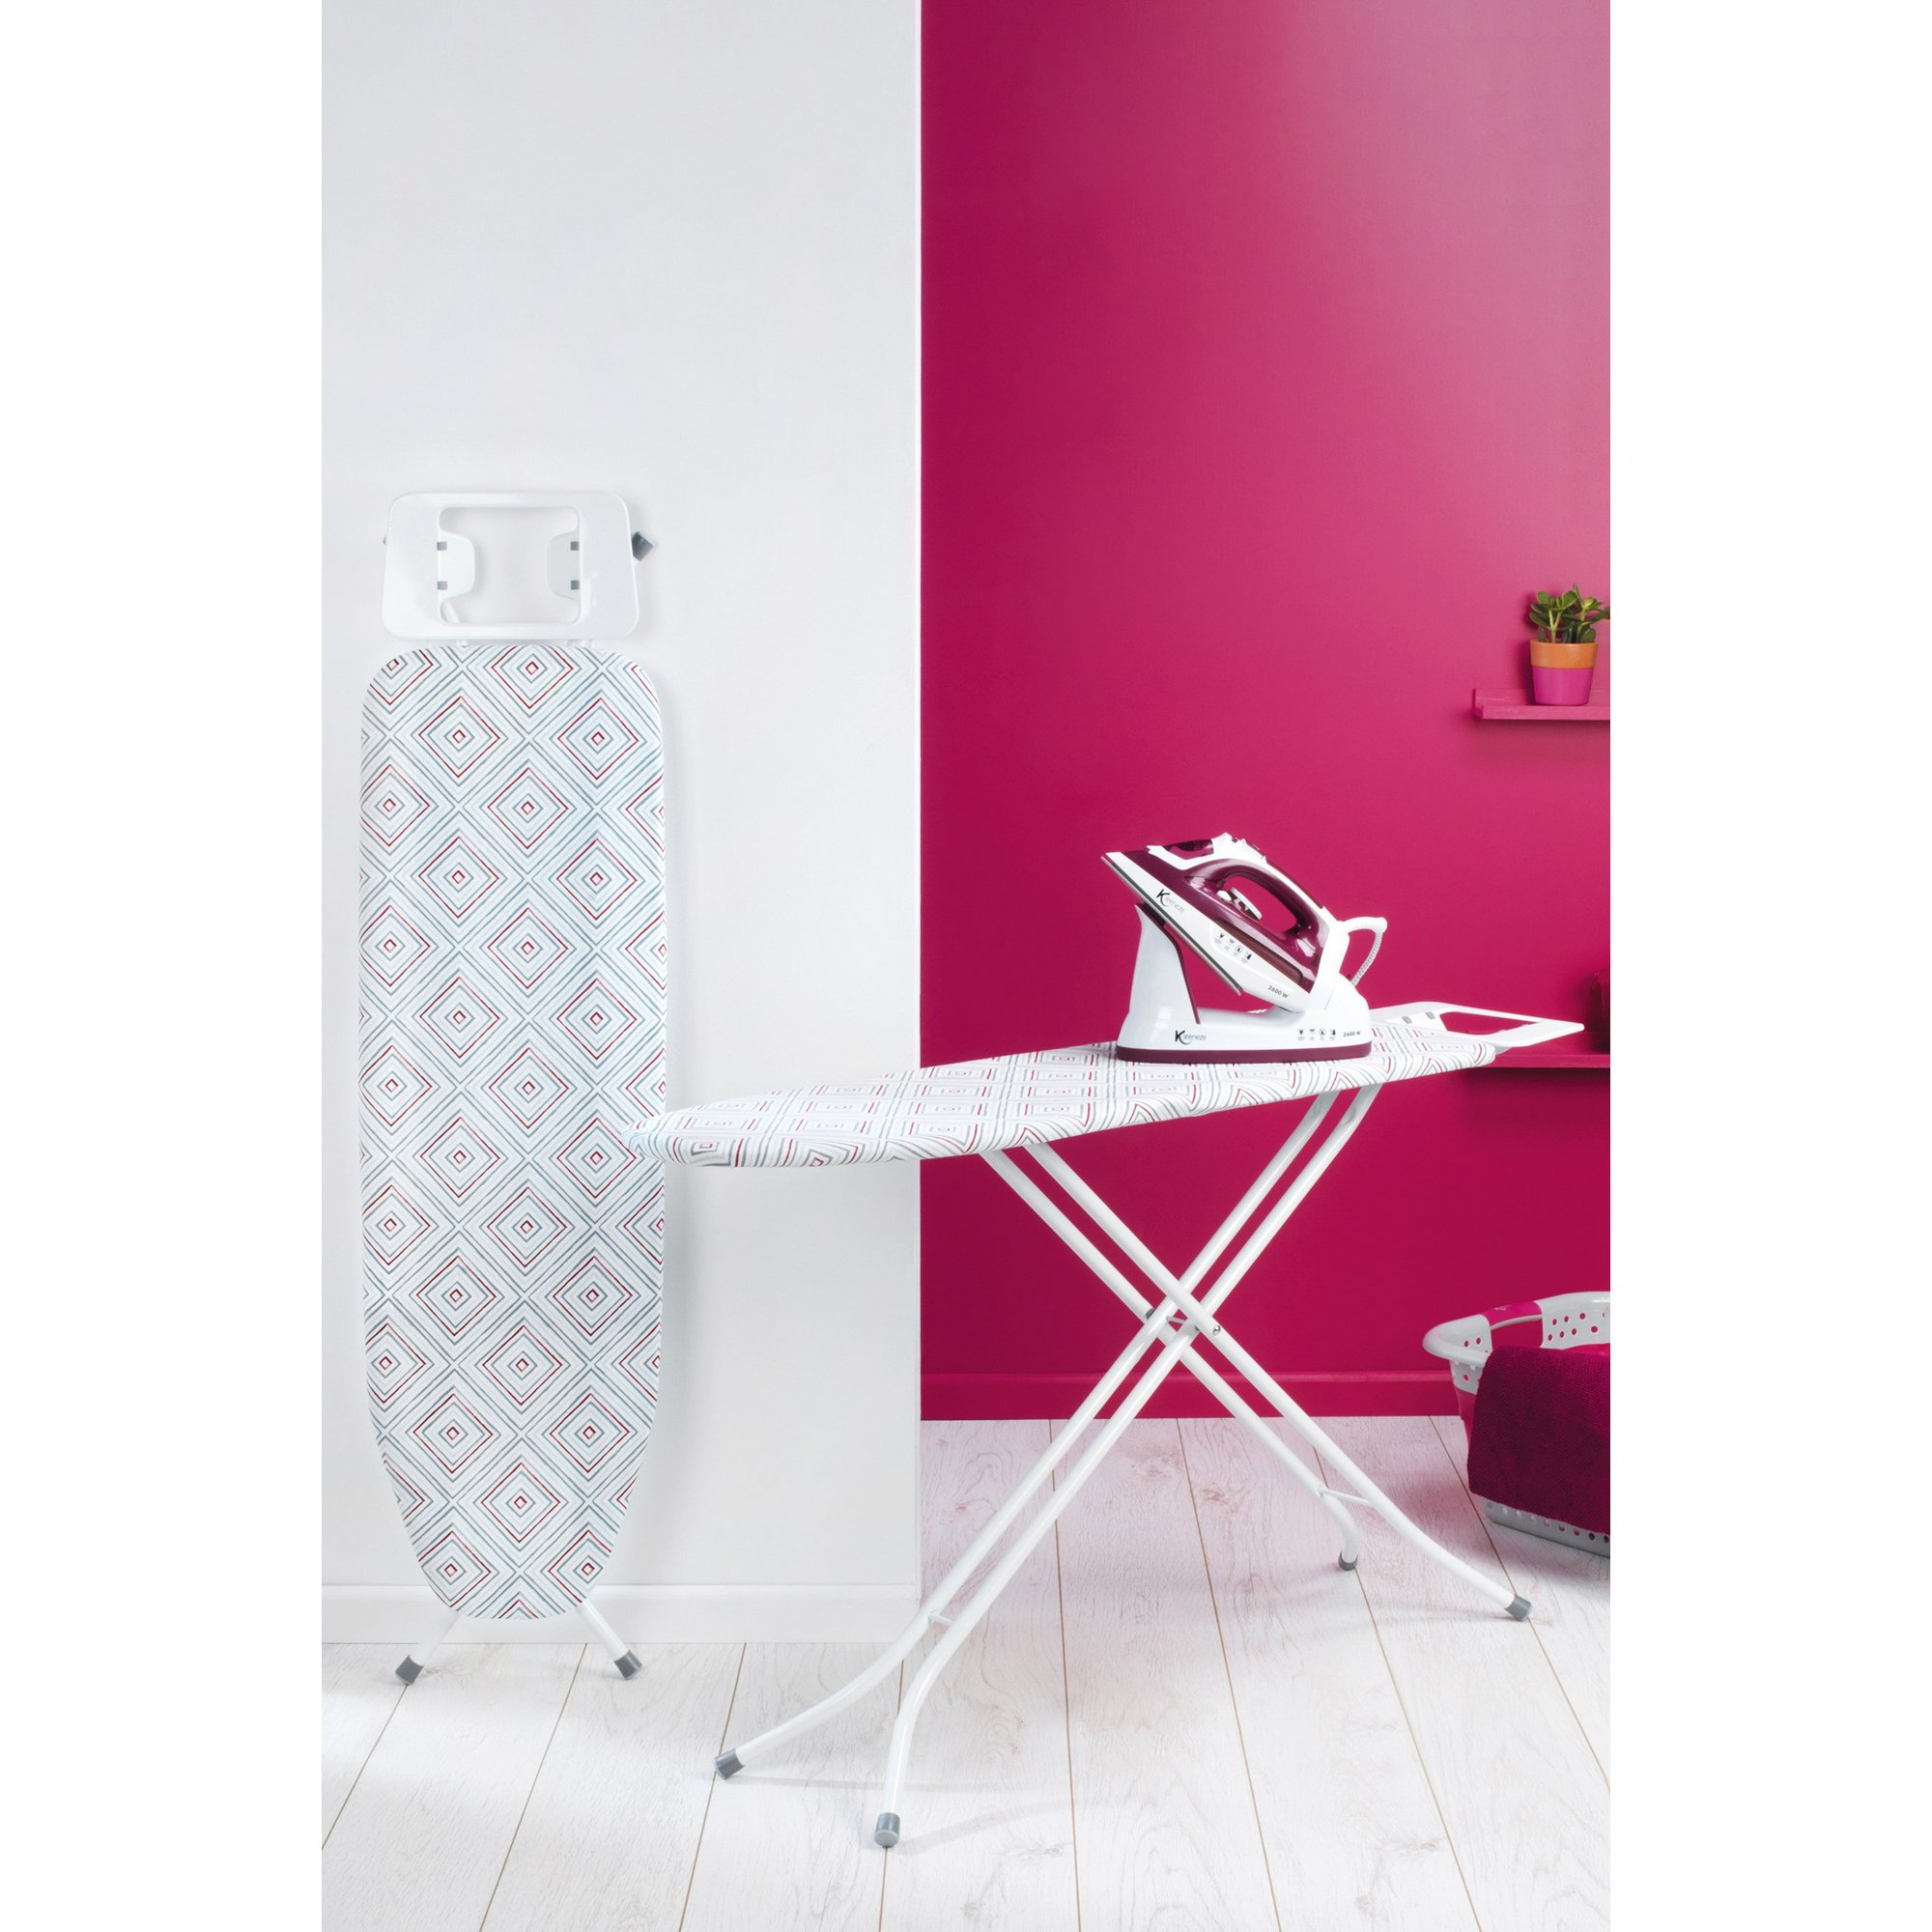 Image of Kleeneze Ironing Board